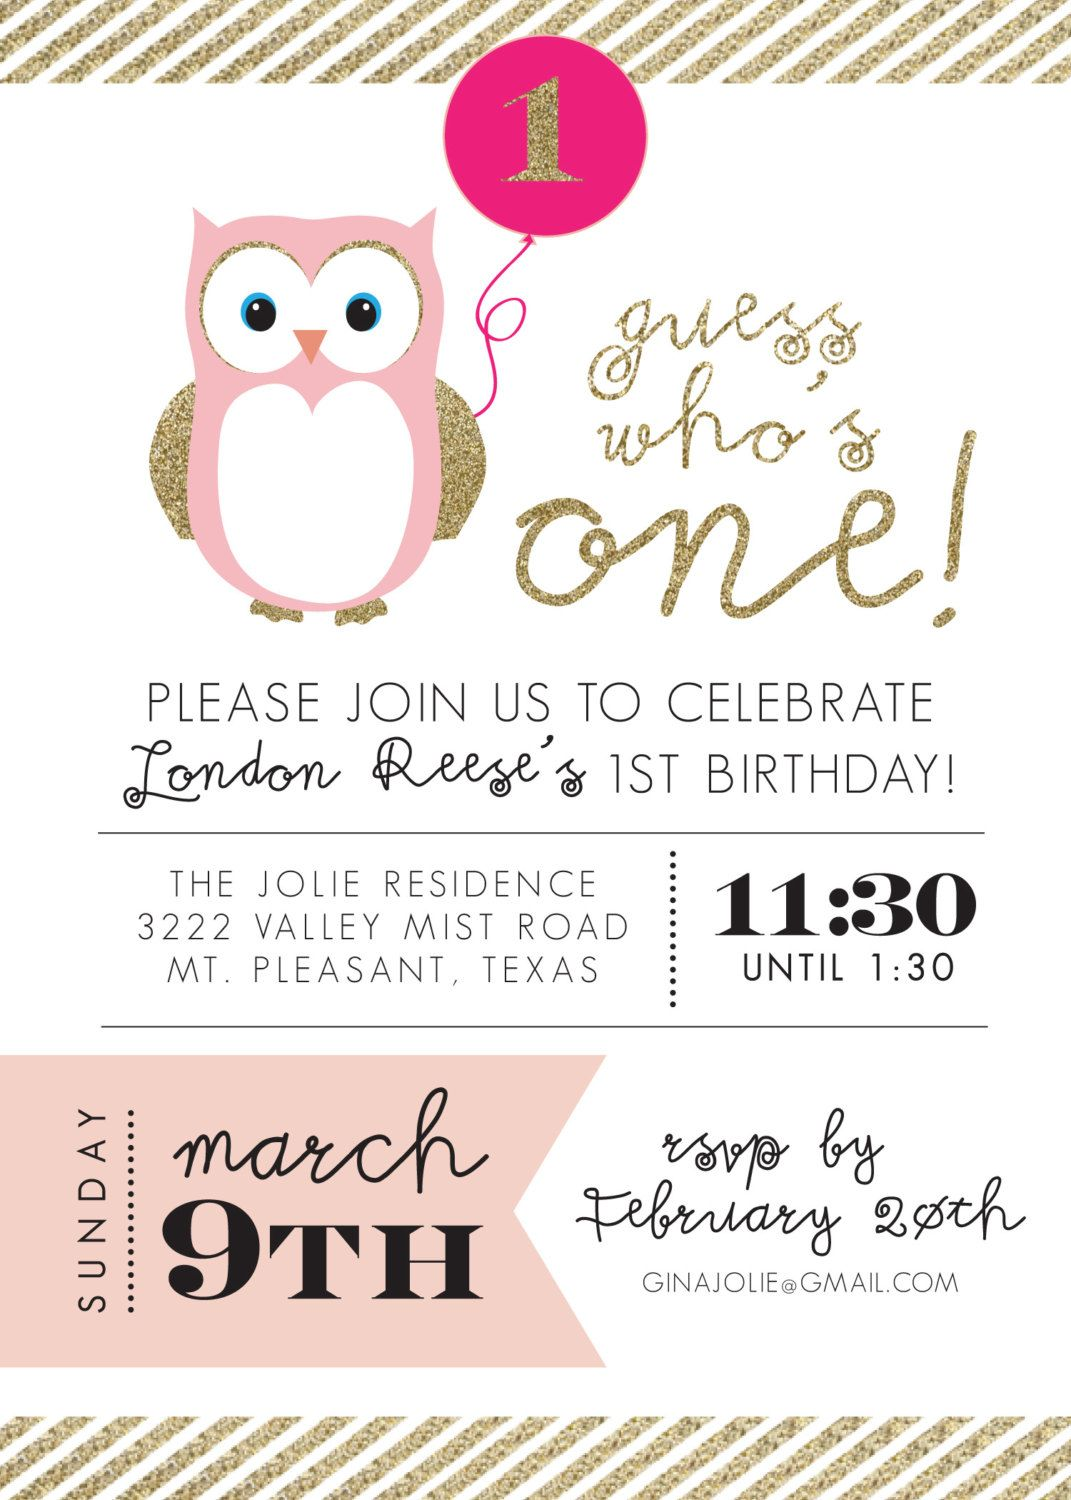 Printable birthday invitation owl party by prettiestprintshop printable birthday invitation owl party by prettiestprintshop 1800 solutioingenieria Choice Image